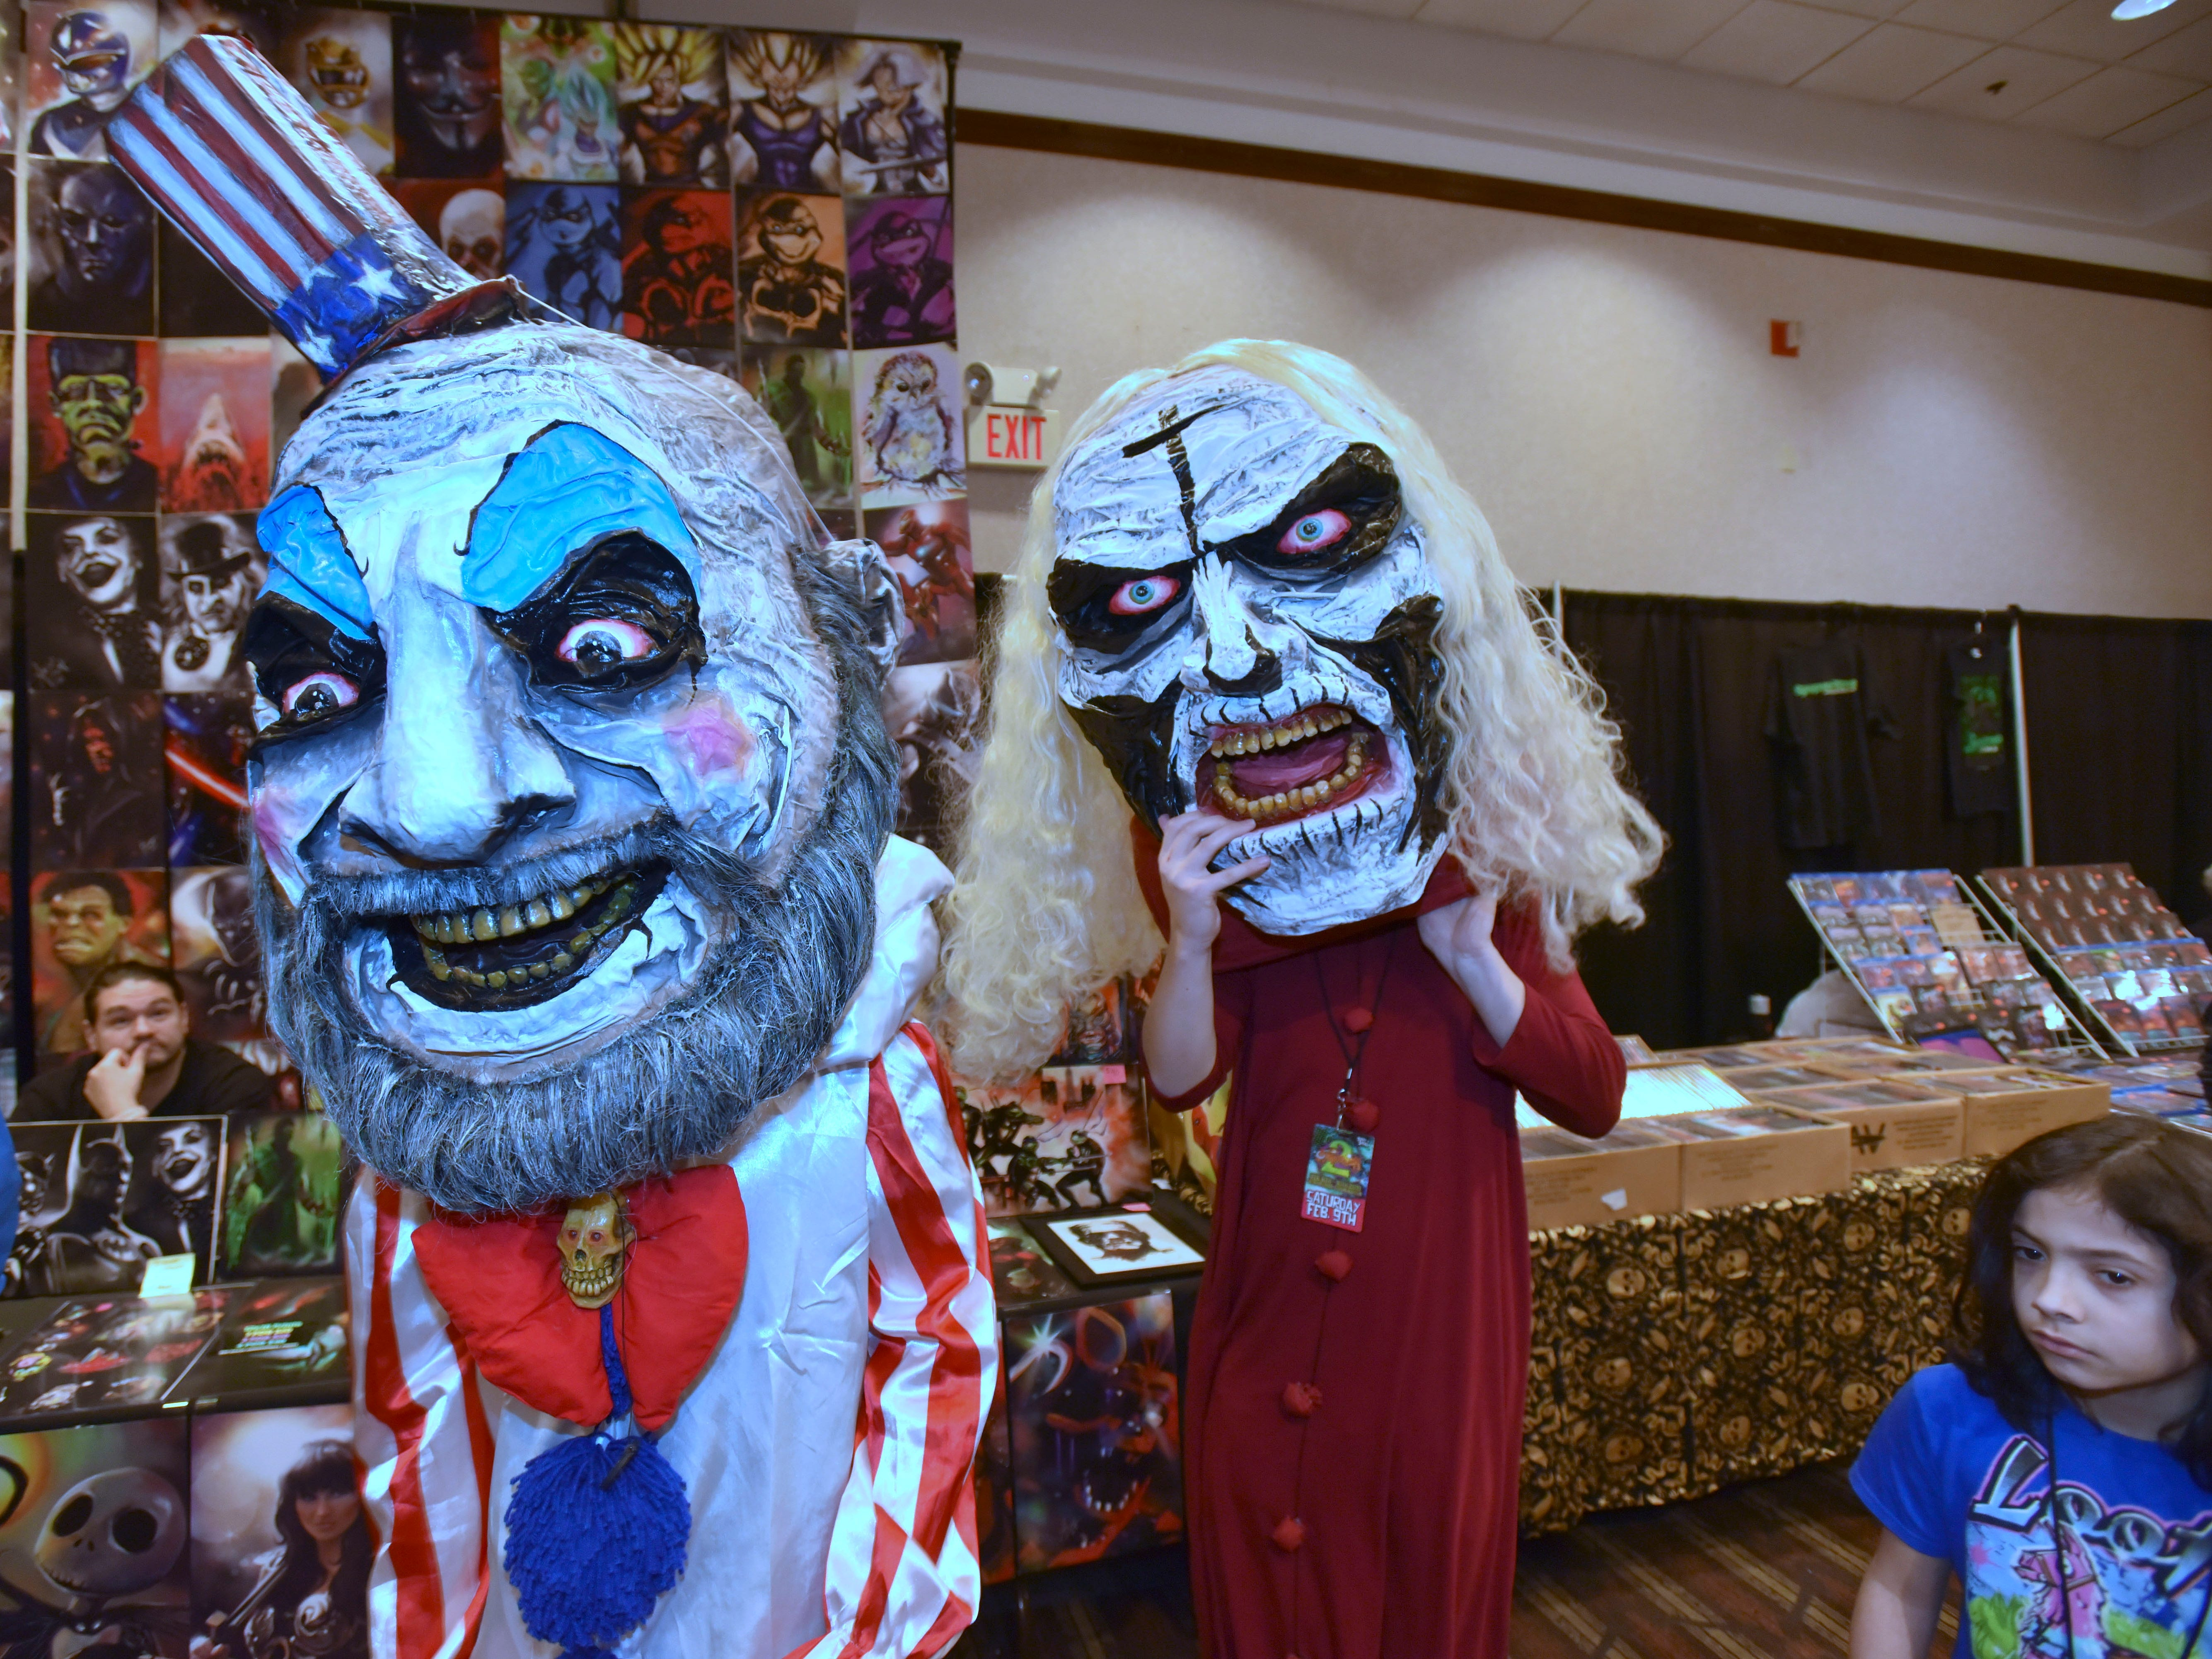 Rob Zombie's slasher / horror movie House of 1000 Corpses characters 'Captain Spaulding,' left, and 'Otis B. Driftwood' right, are portrayed by friends Phoenix Kelley, 22, and Allen Orman, 23, respectively, both of Brazil, Indiana, as they wear self-made, paper mache heads.